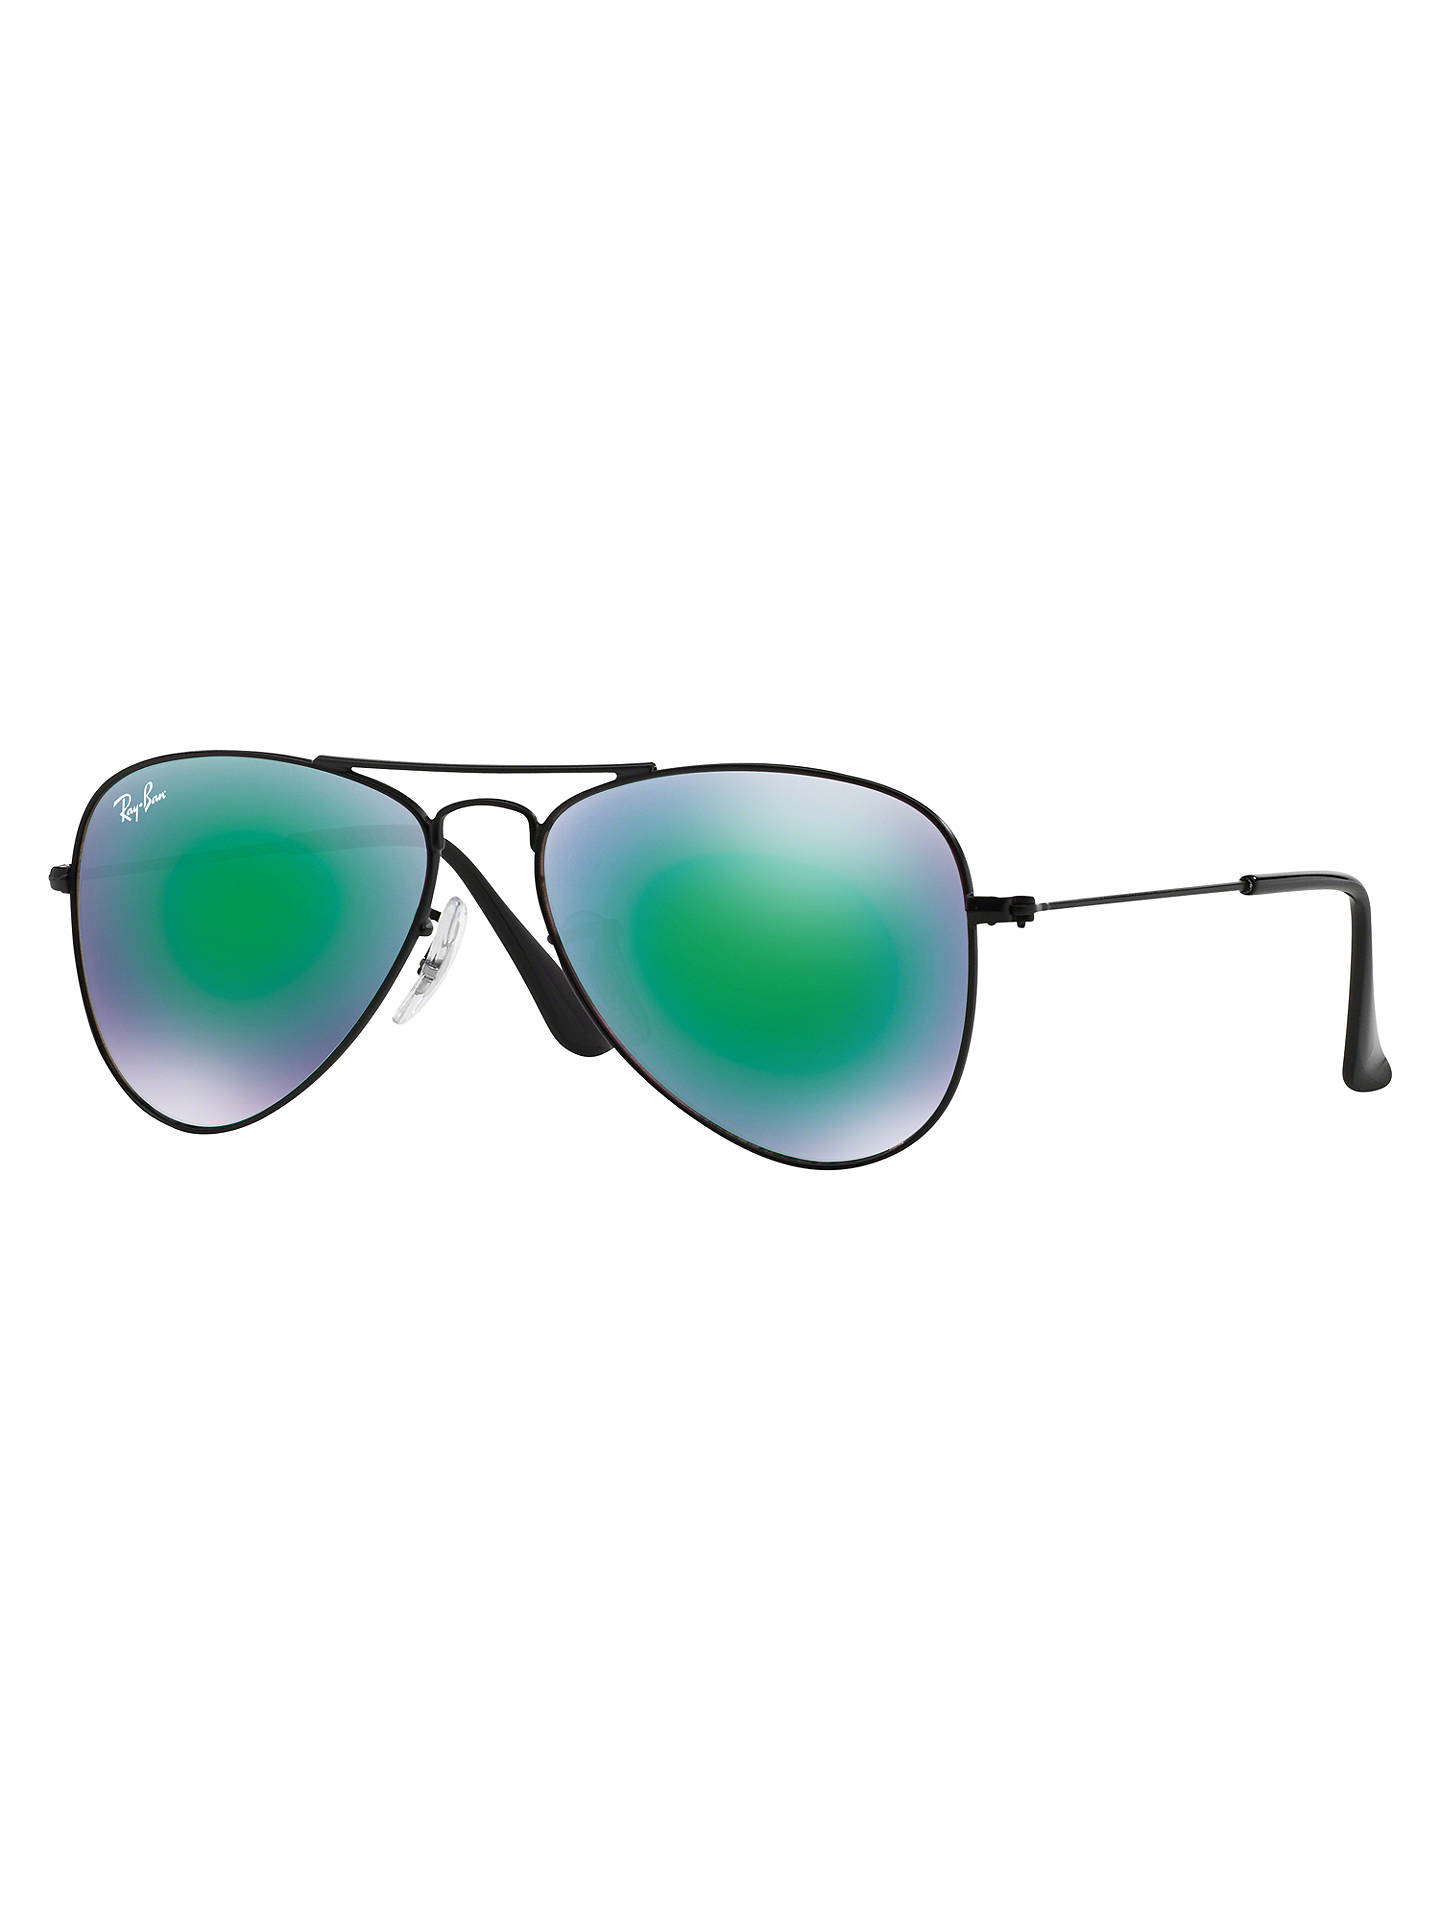 8ff1acdc36 Ray-Ban Junior RJ9506S Aviator Sunglasses at John Lewis   Partners